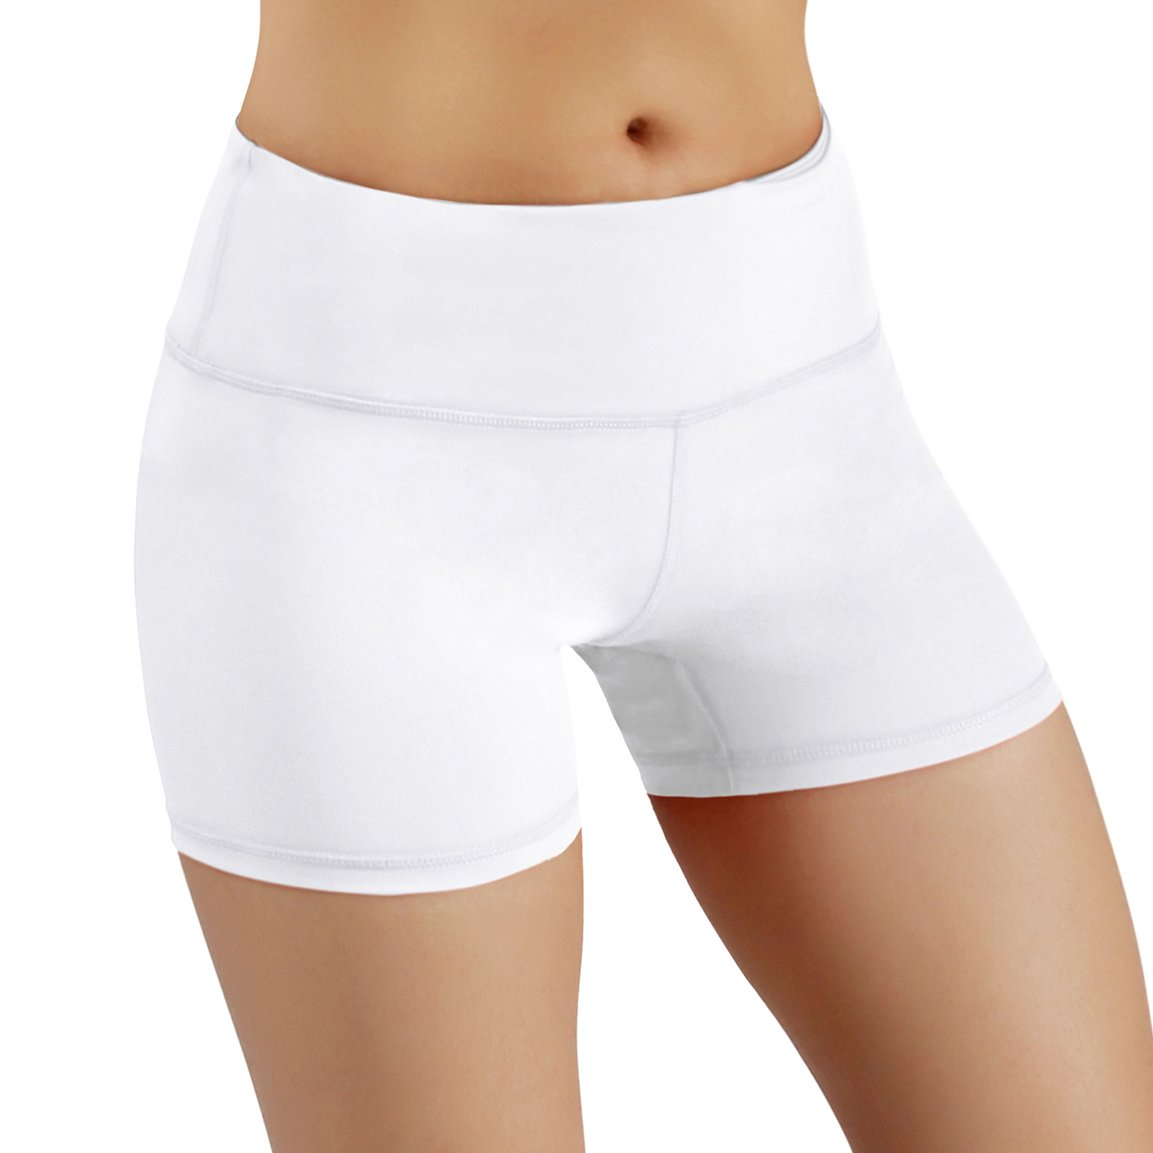 ODODOS Womens Yoga Short Tummy Control Workout Running Athletic Non See-Through Yoga Shorts with Hidden Pocket